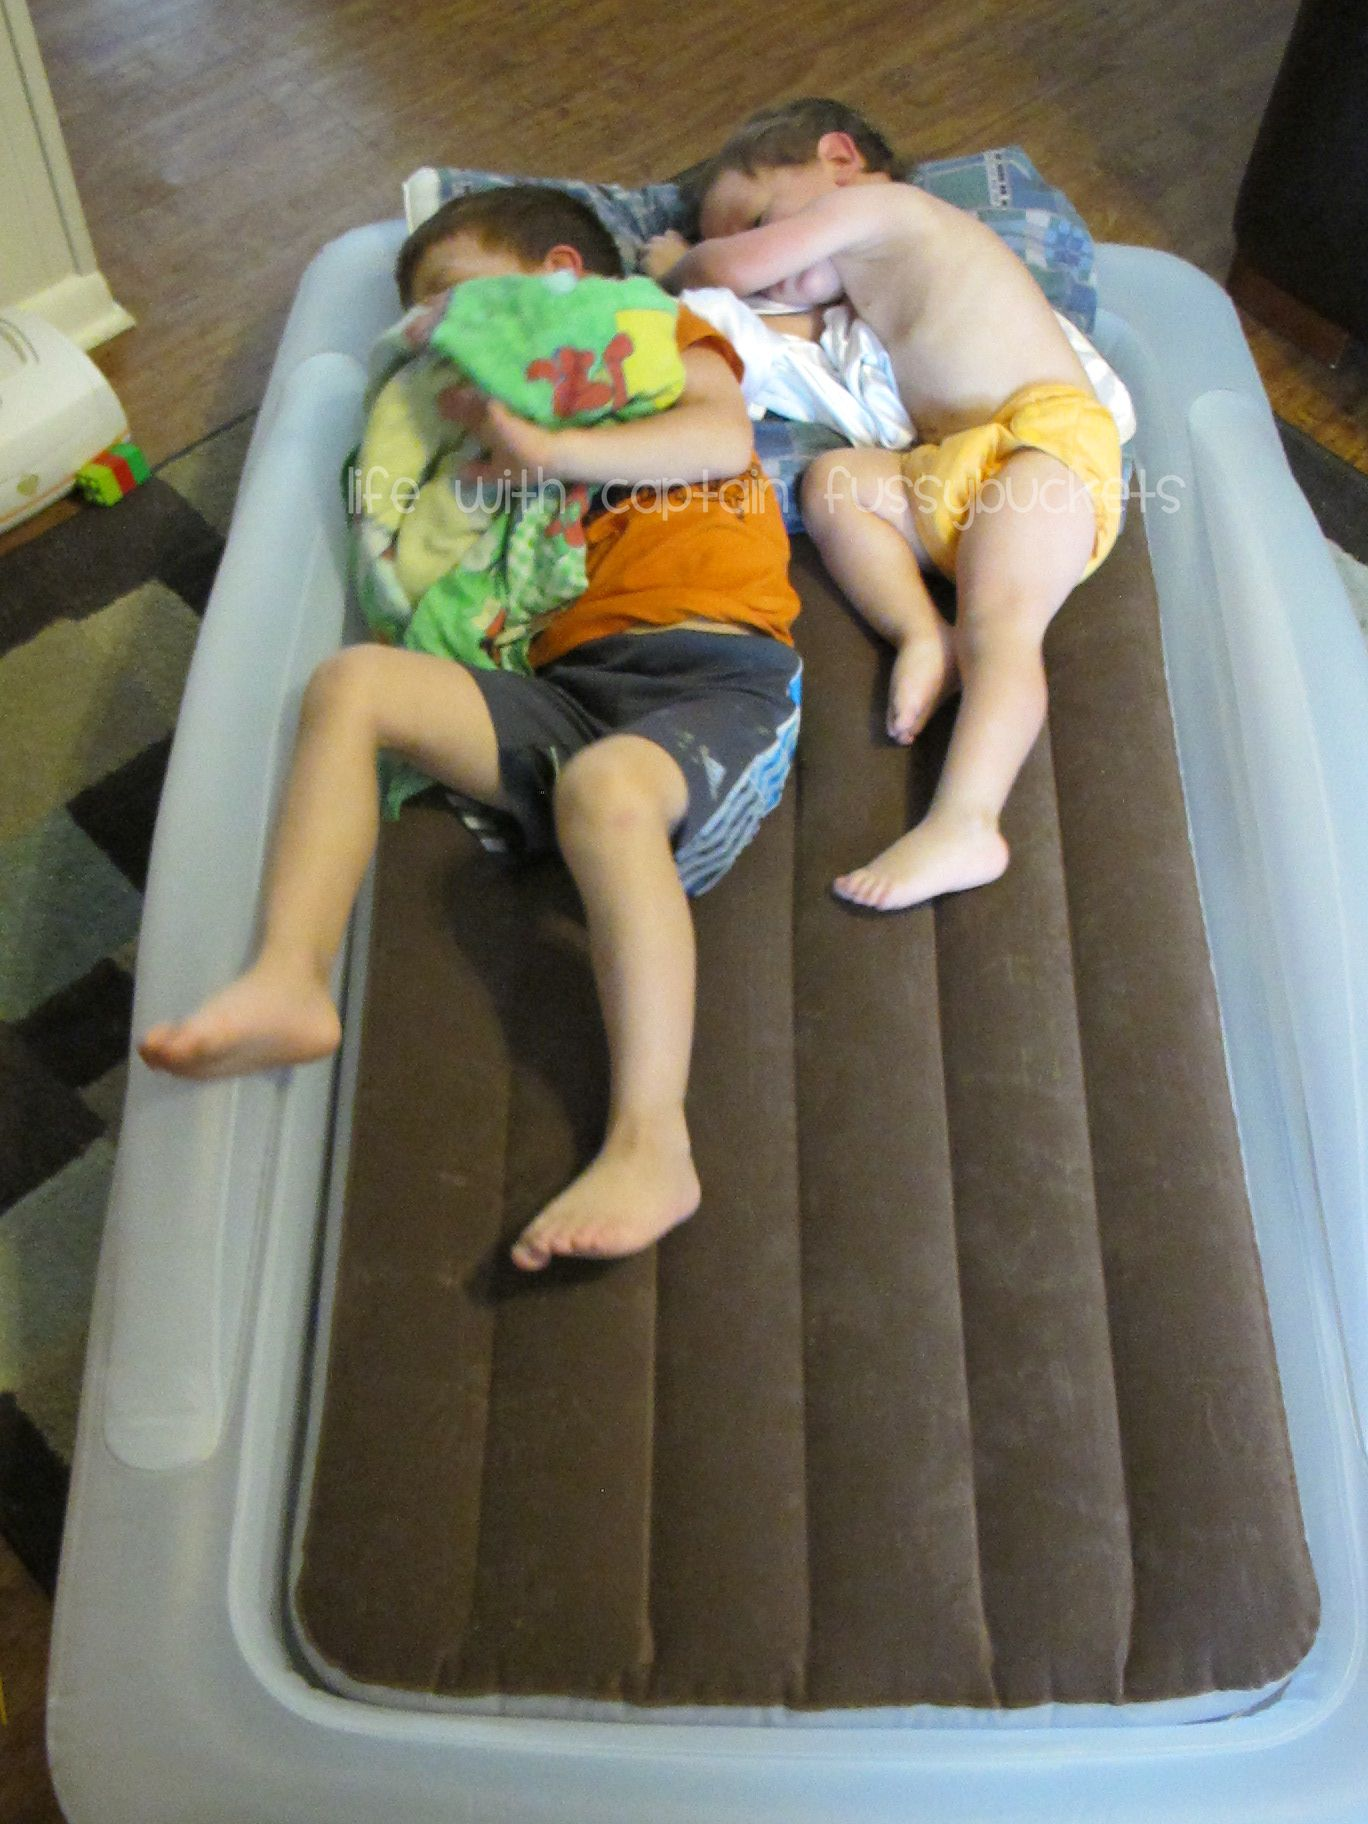 Holiday Traveling is Made Easy with The Shrunks Toddler Travel Bed